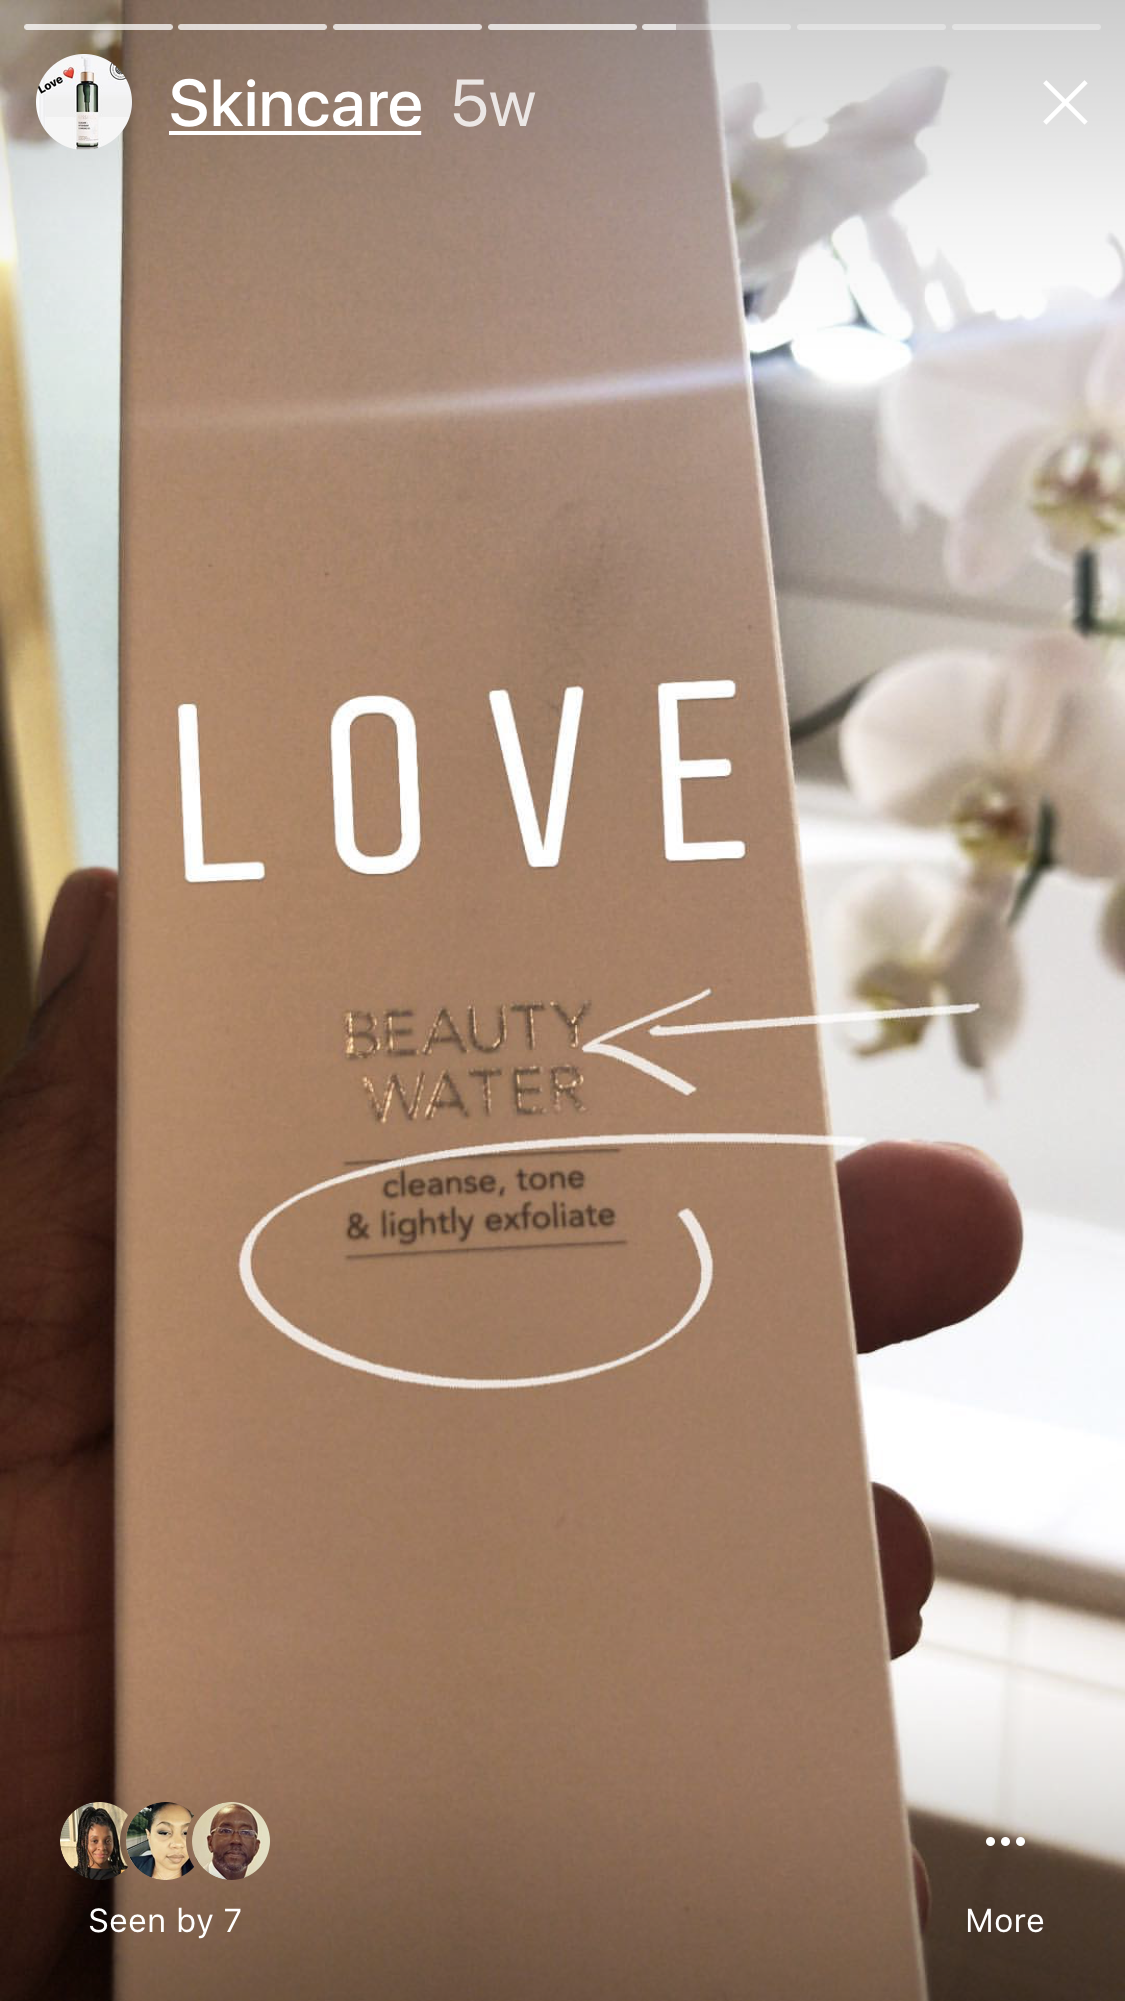 """""""My BEAUTY WATER"""" MY MICELAR WATER, This is my FAVORITE thus far. I feel no need to venture. This product gently tones and remove residue with ease. I find myself using it in the mornings to refresh and then reapply moisture before makeup."""